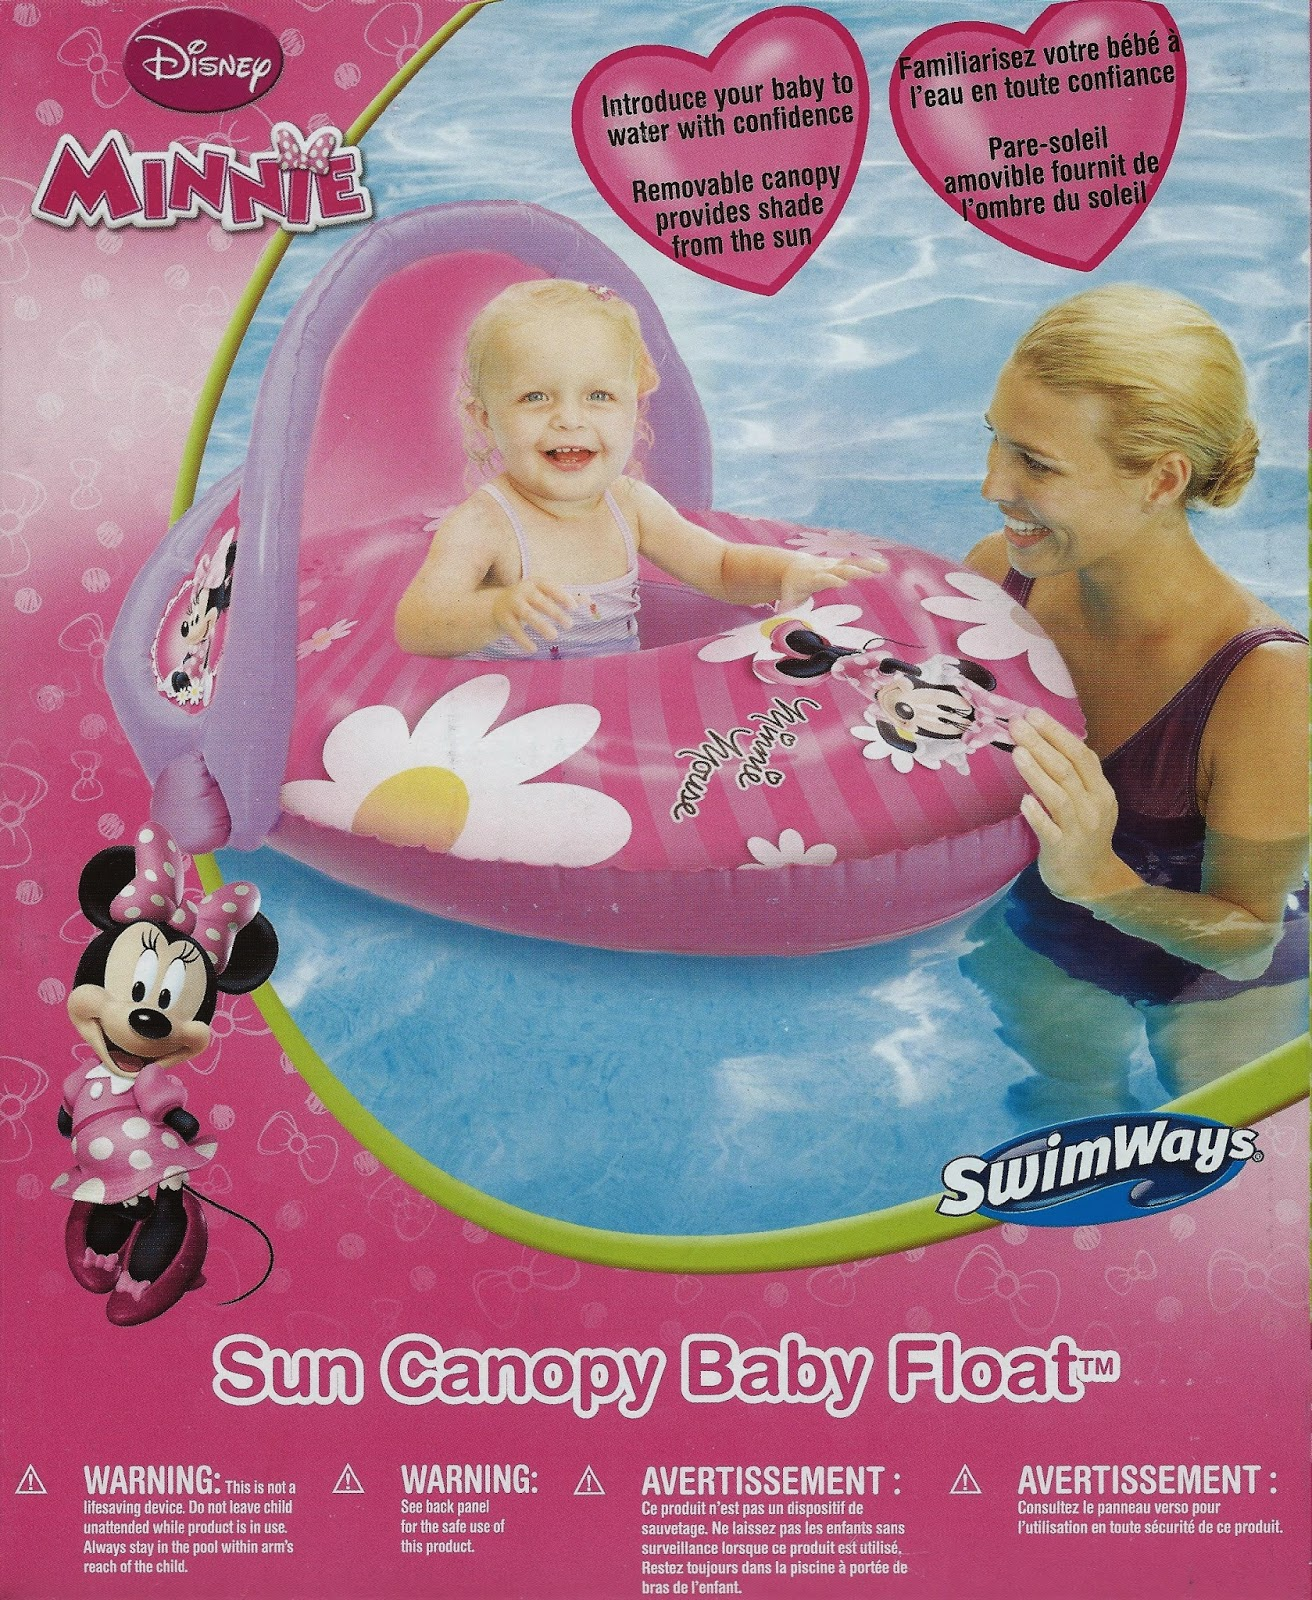 Disney Minnie Mouse Sun Canopy Baby Float MM19